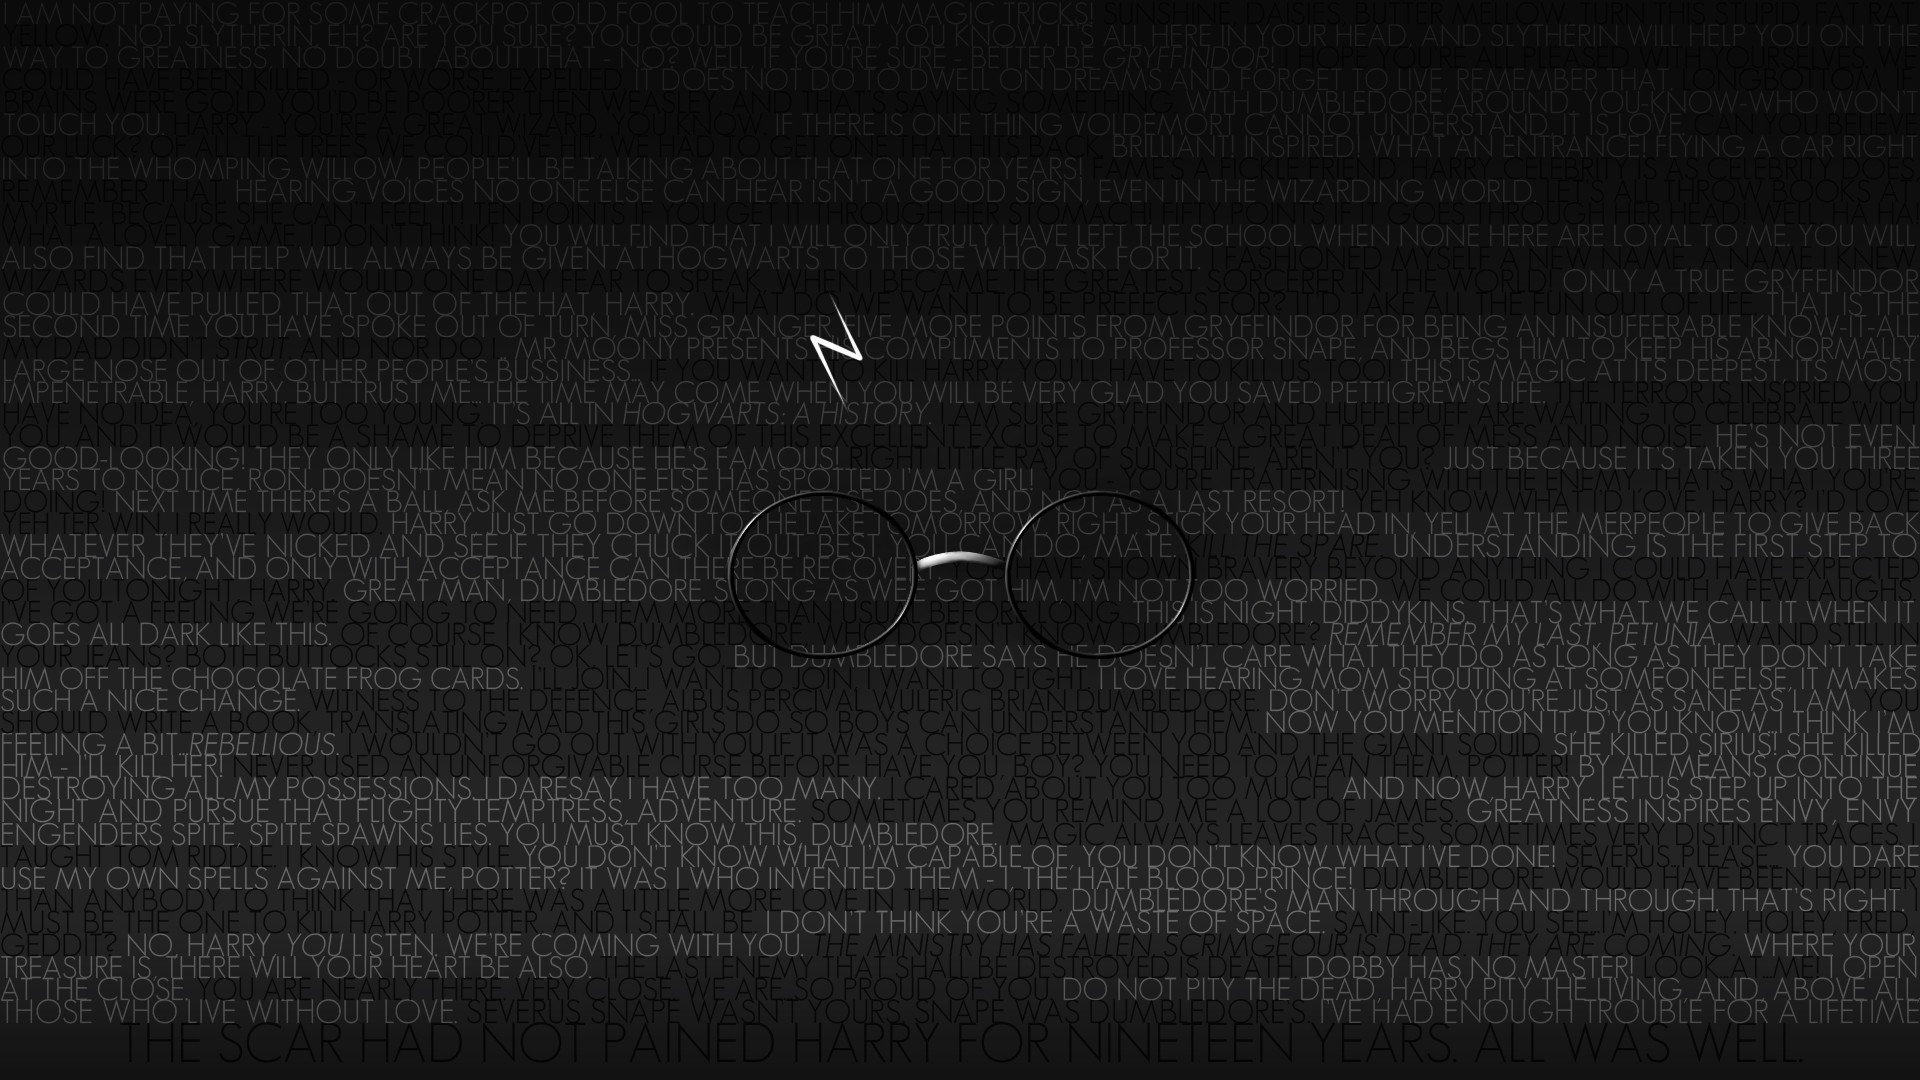 Cool Wallpaper Harry Potter Minimalistic - 414327-harry-potter-desktop-backgrounds-1920x1080-for-htc  Collection_92669.jpg